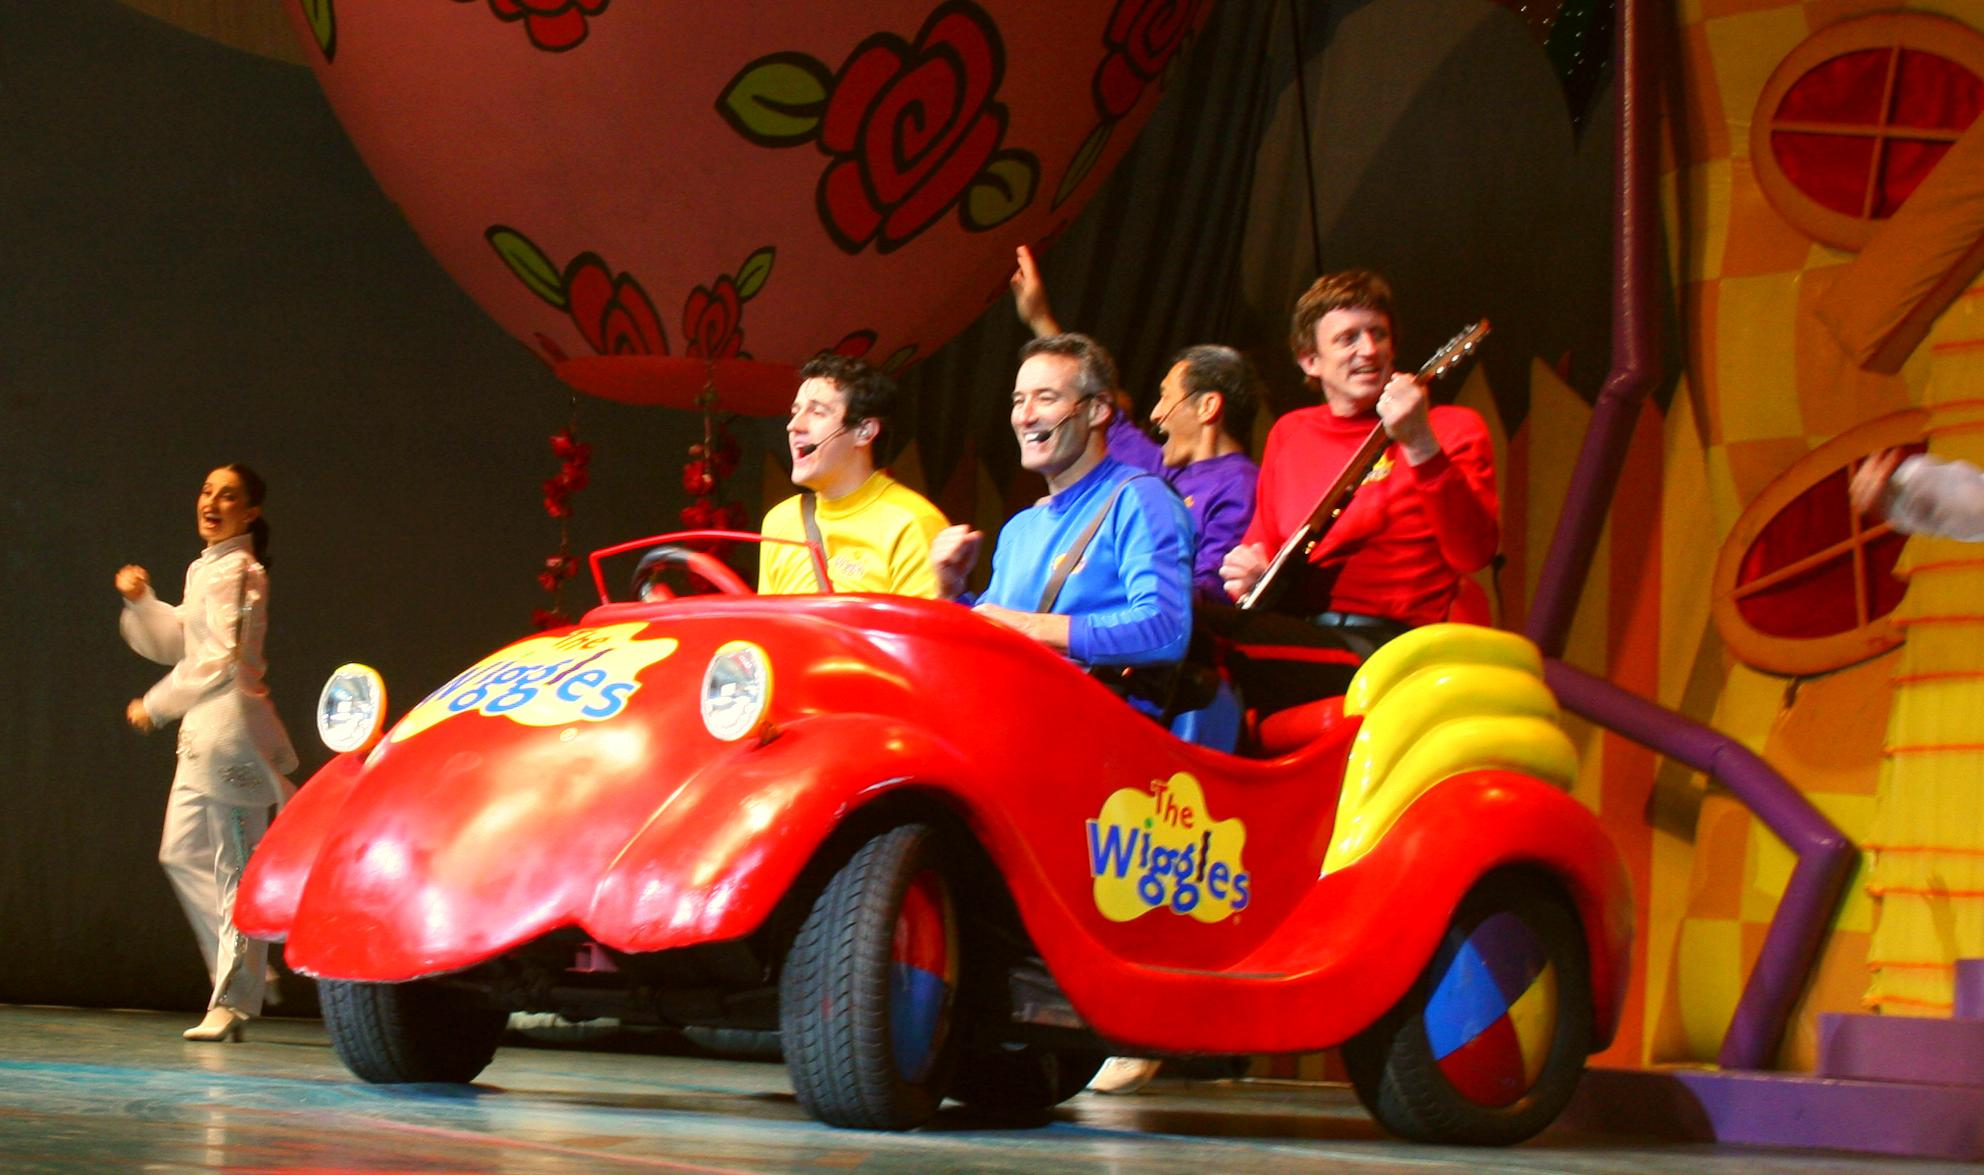 The Wiggles Wollongong